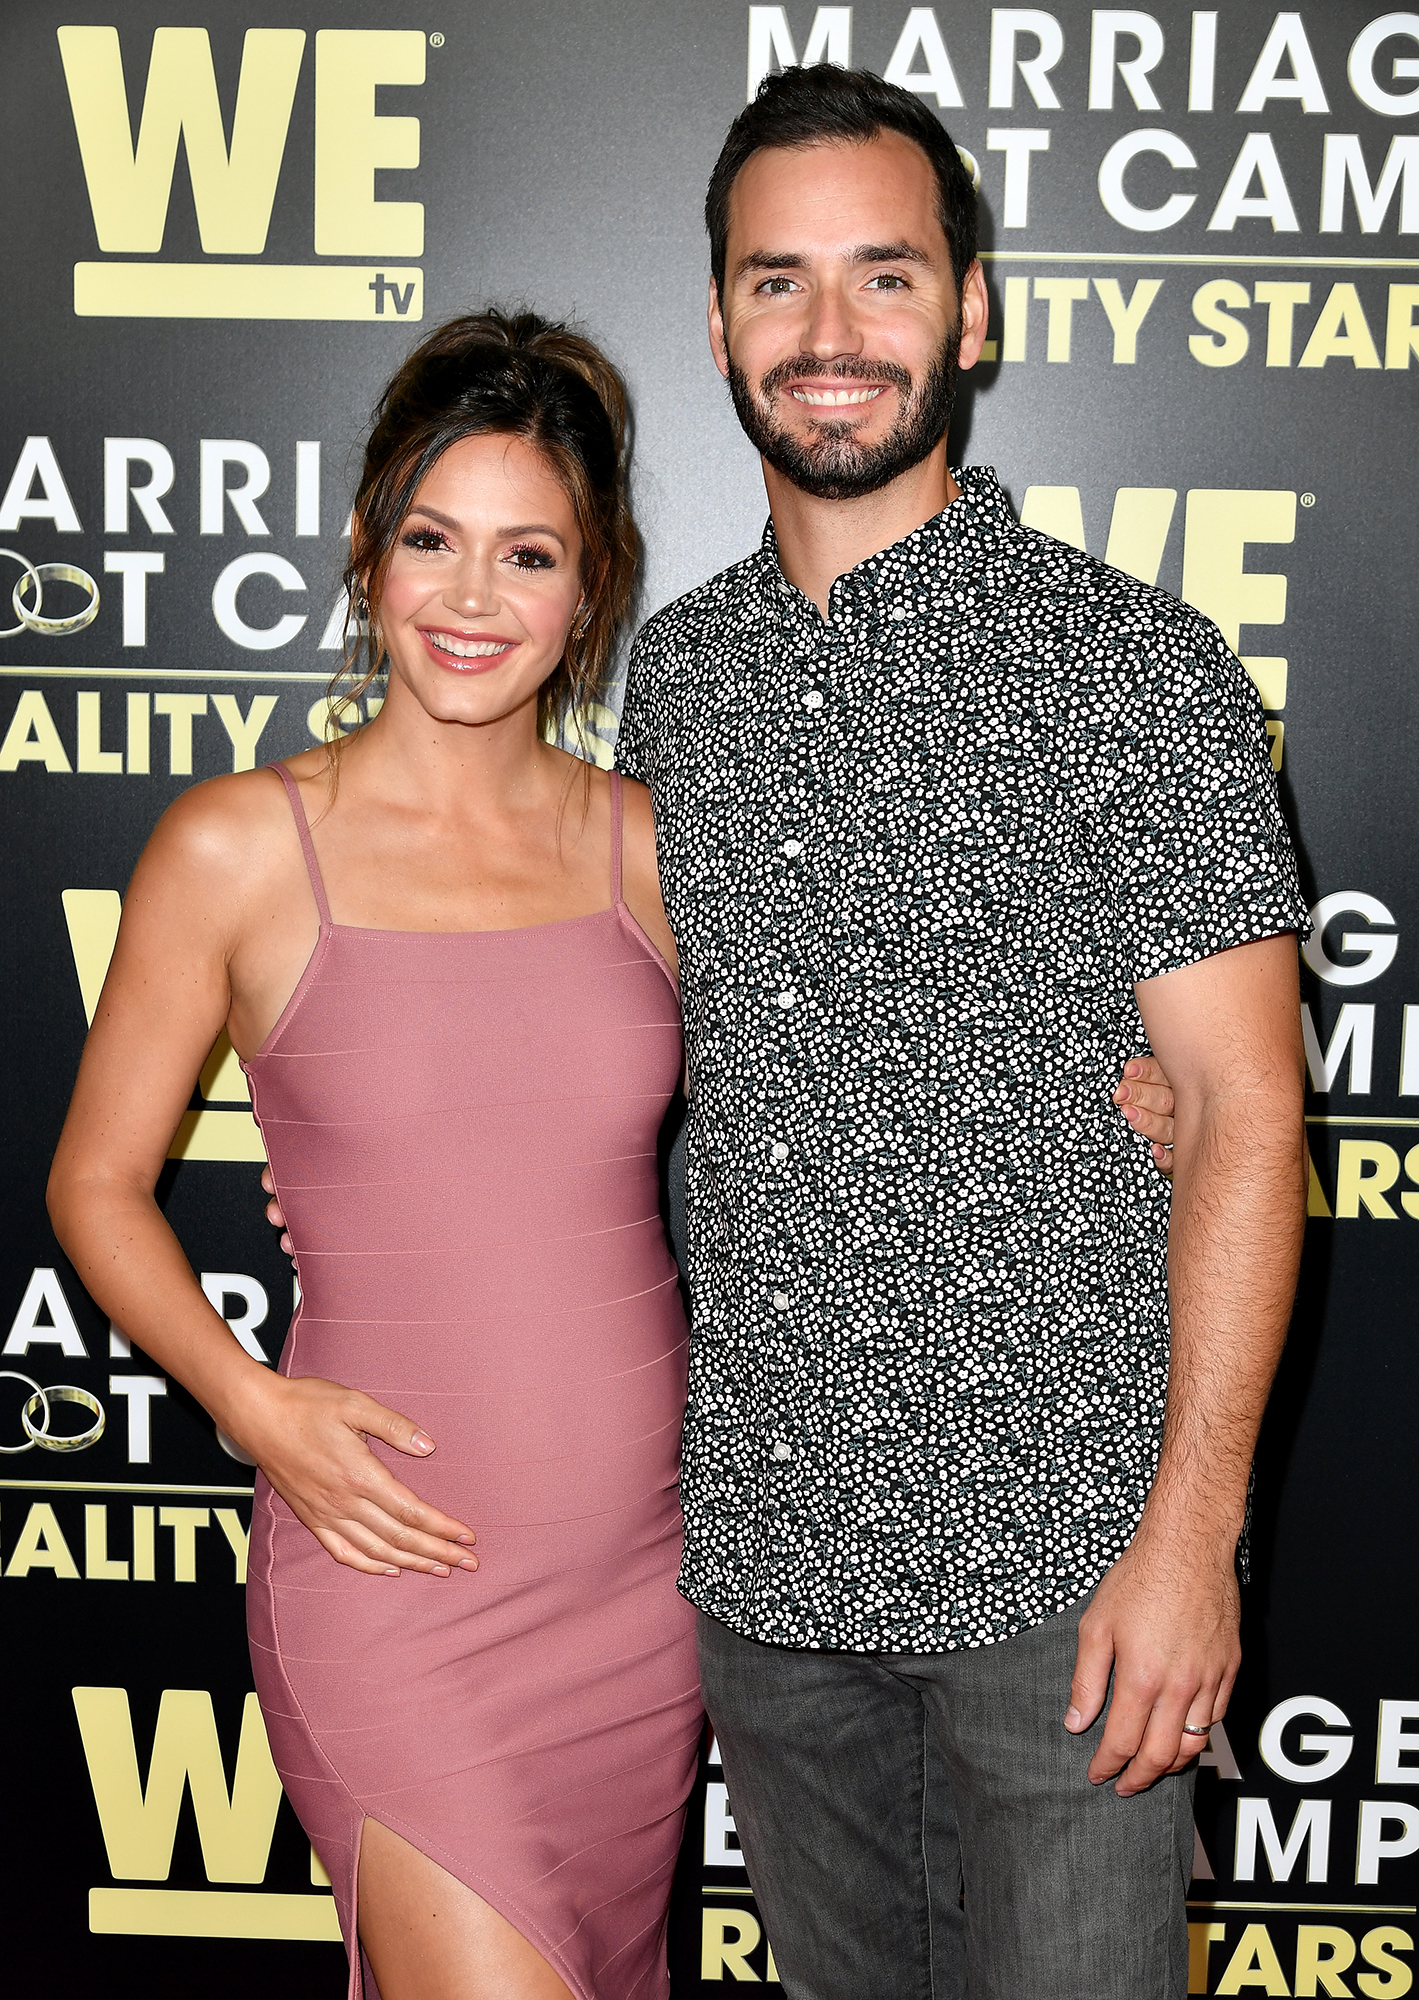 Every Bachelor Nation Couple That Has Tied the Knot - The lovebirds tied the knot in January 2015 after meeting on The Bachelorette season 9. They share two sons, Asher and Zander.